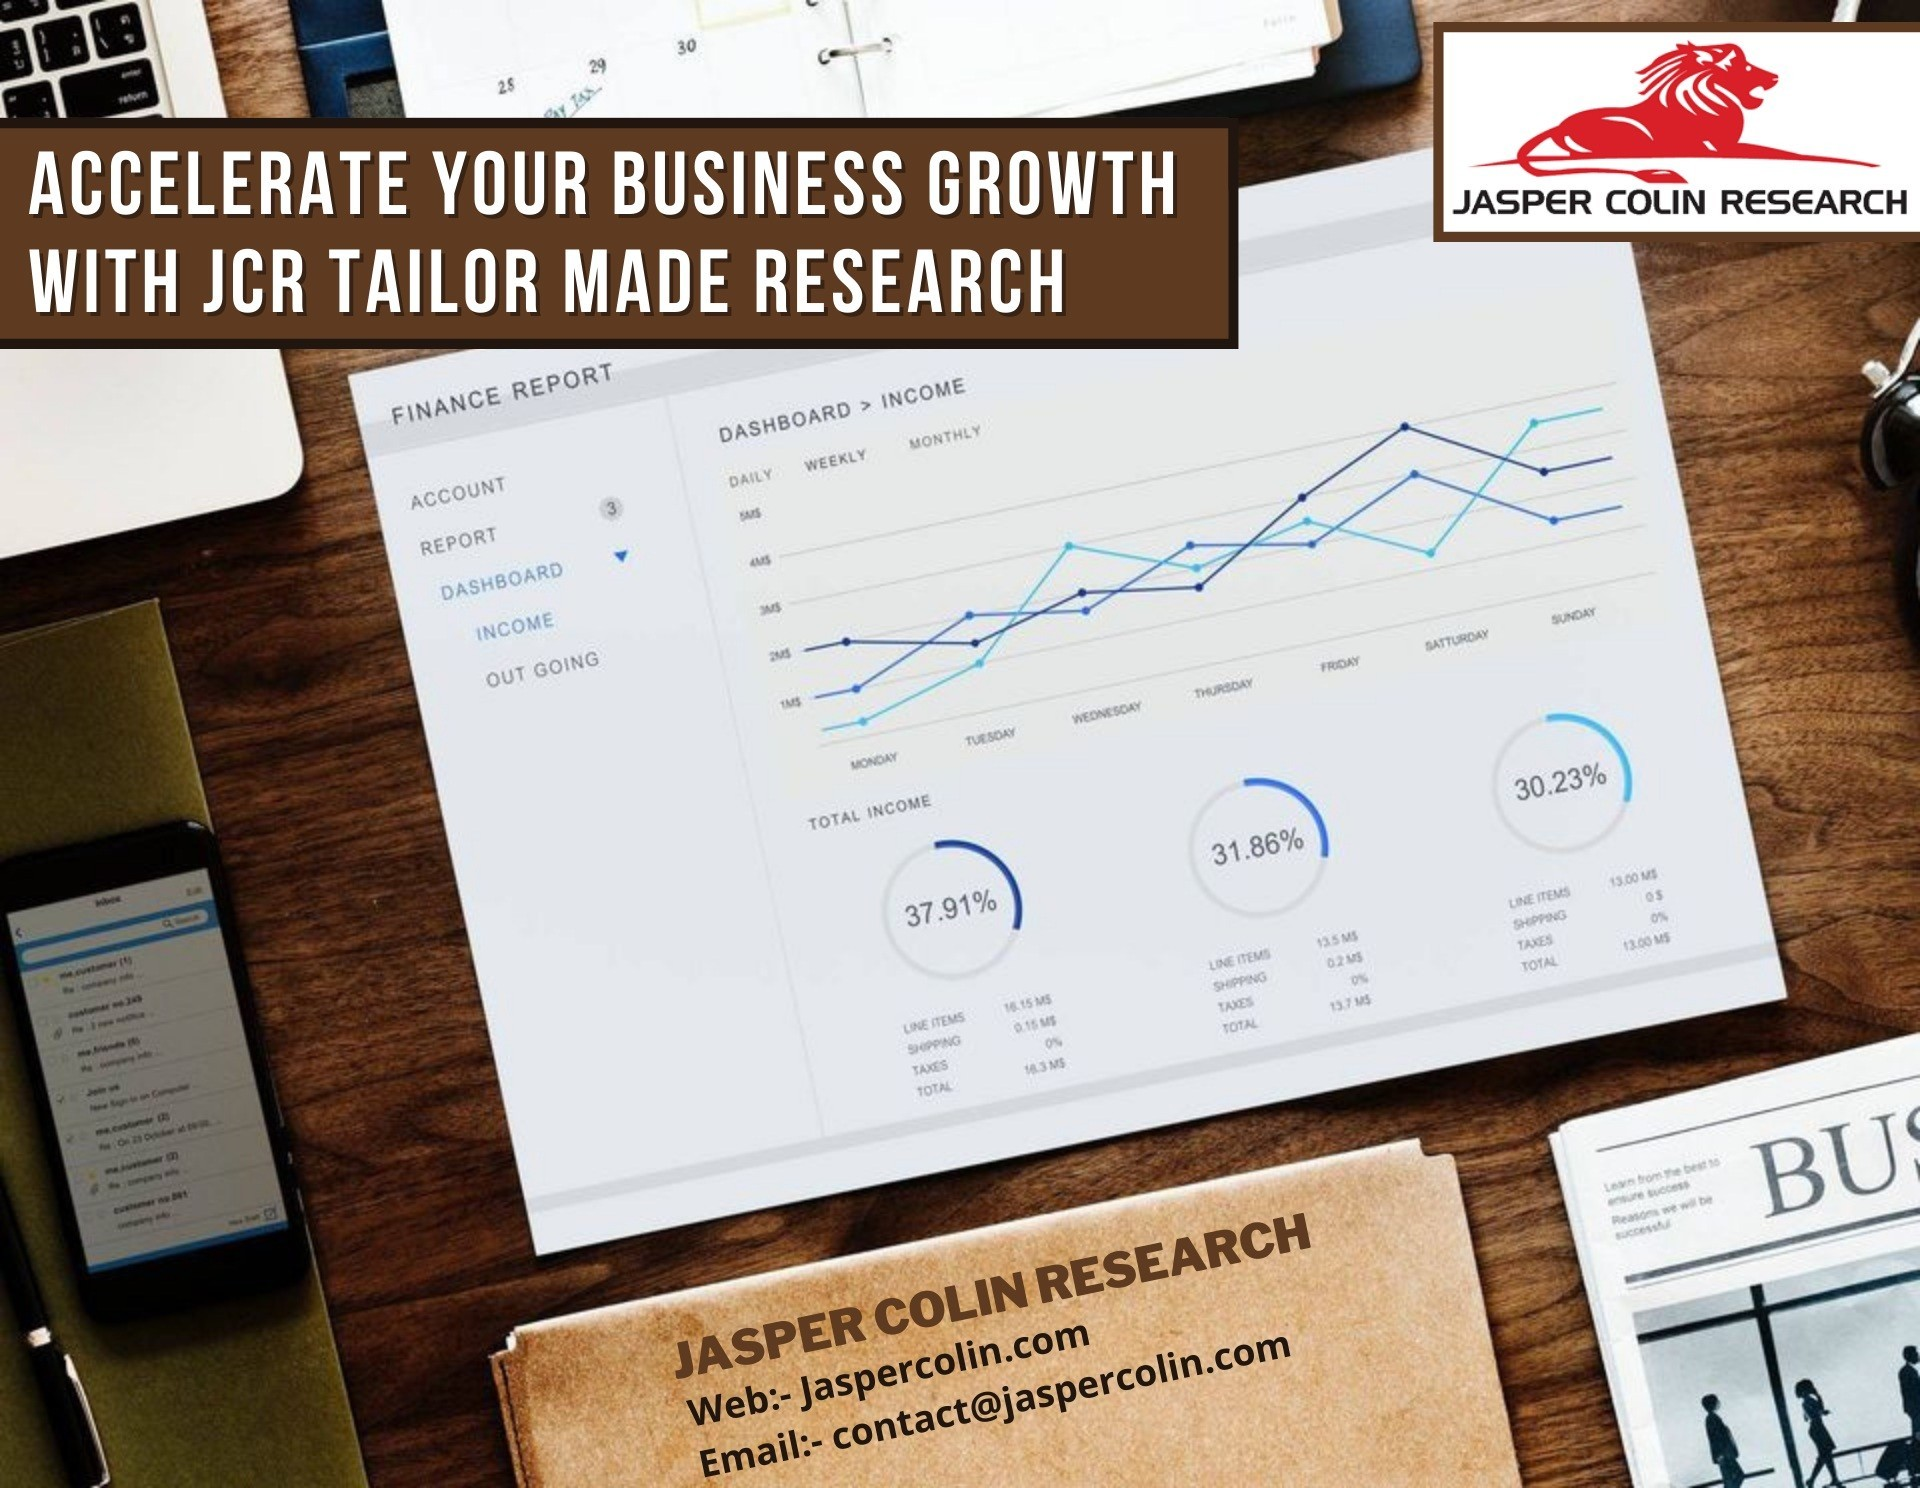 Tailor-made Business Research to Grow your Brand